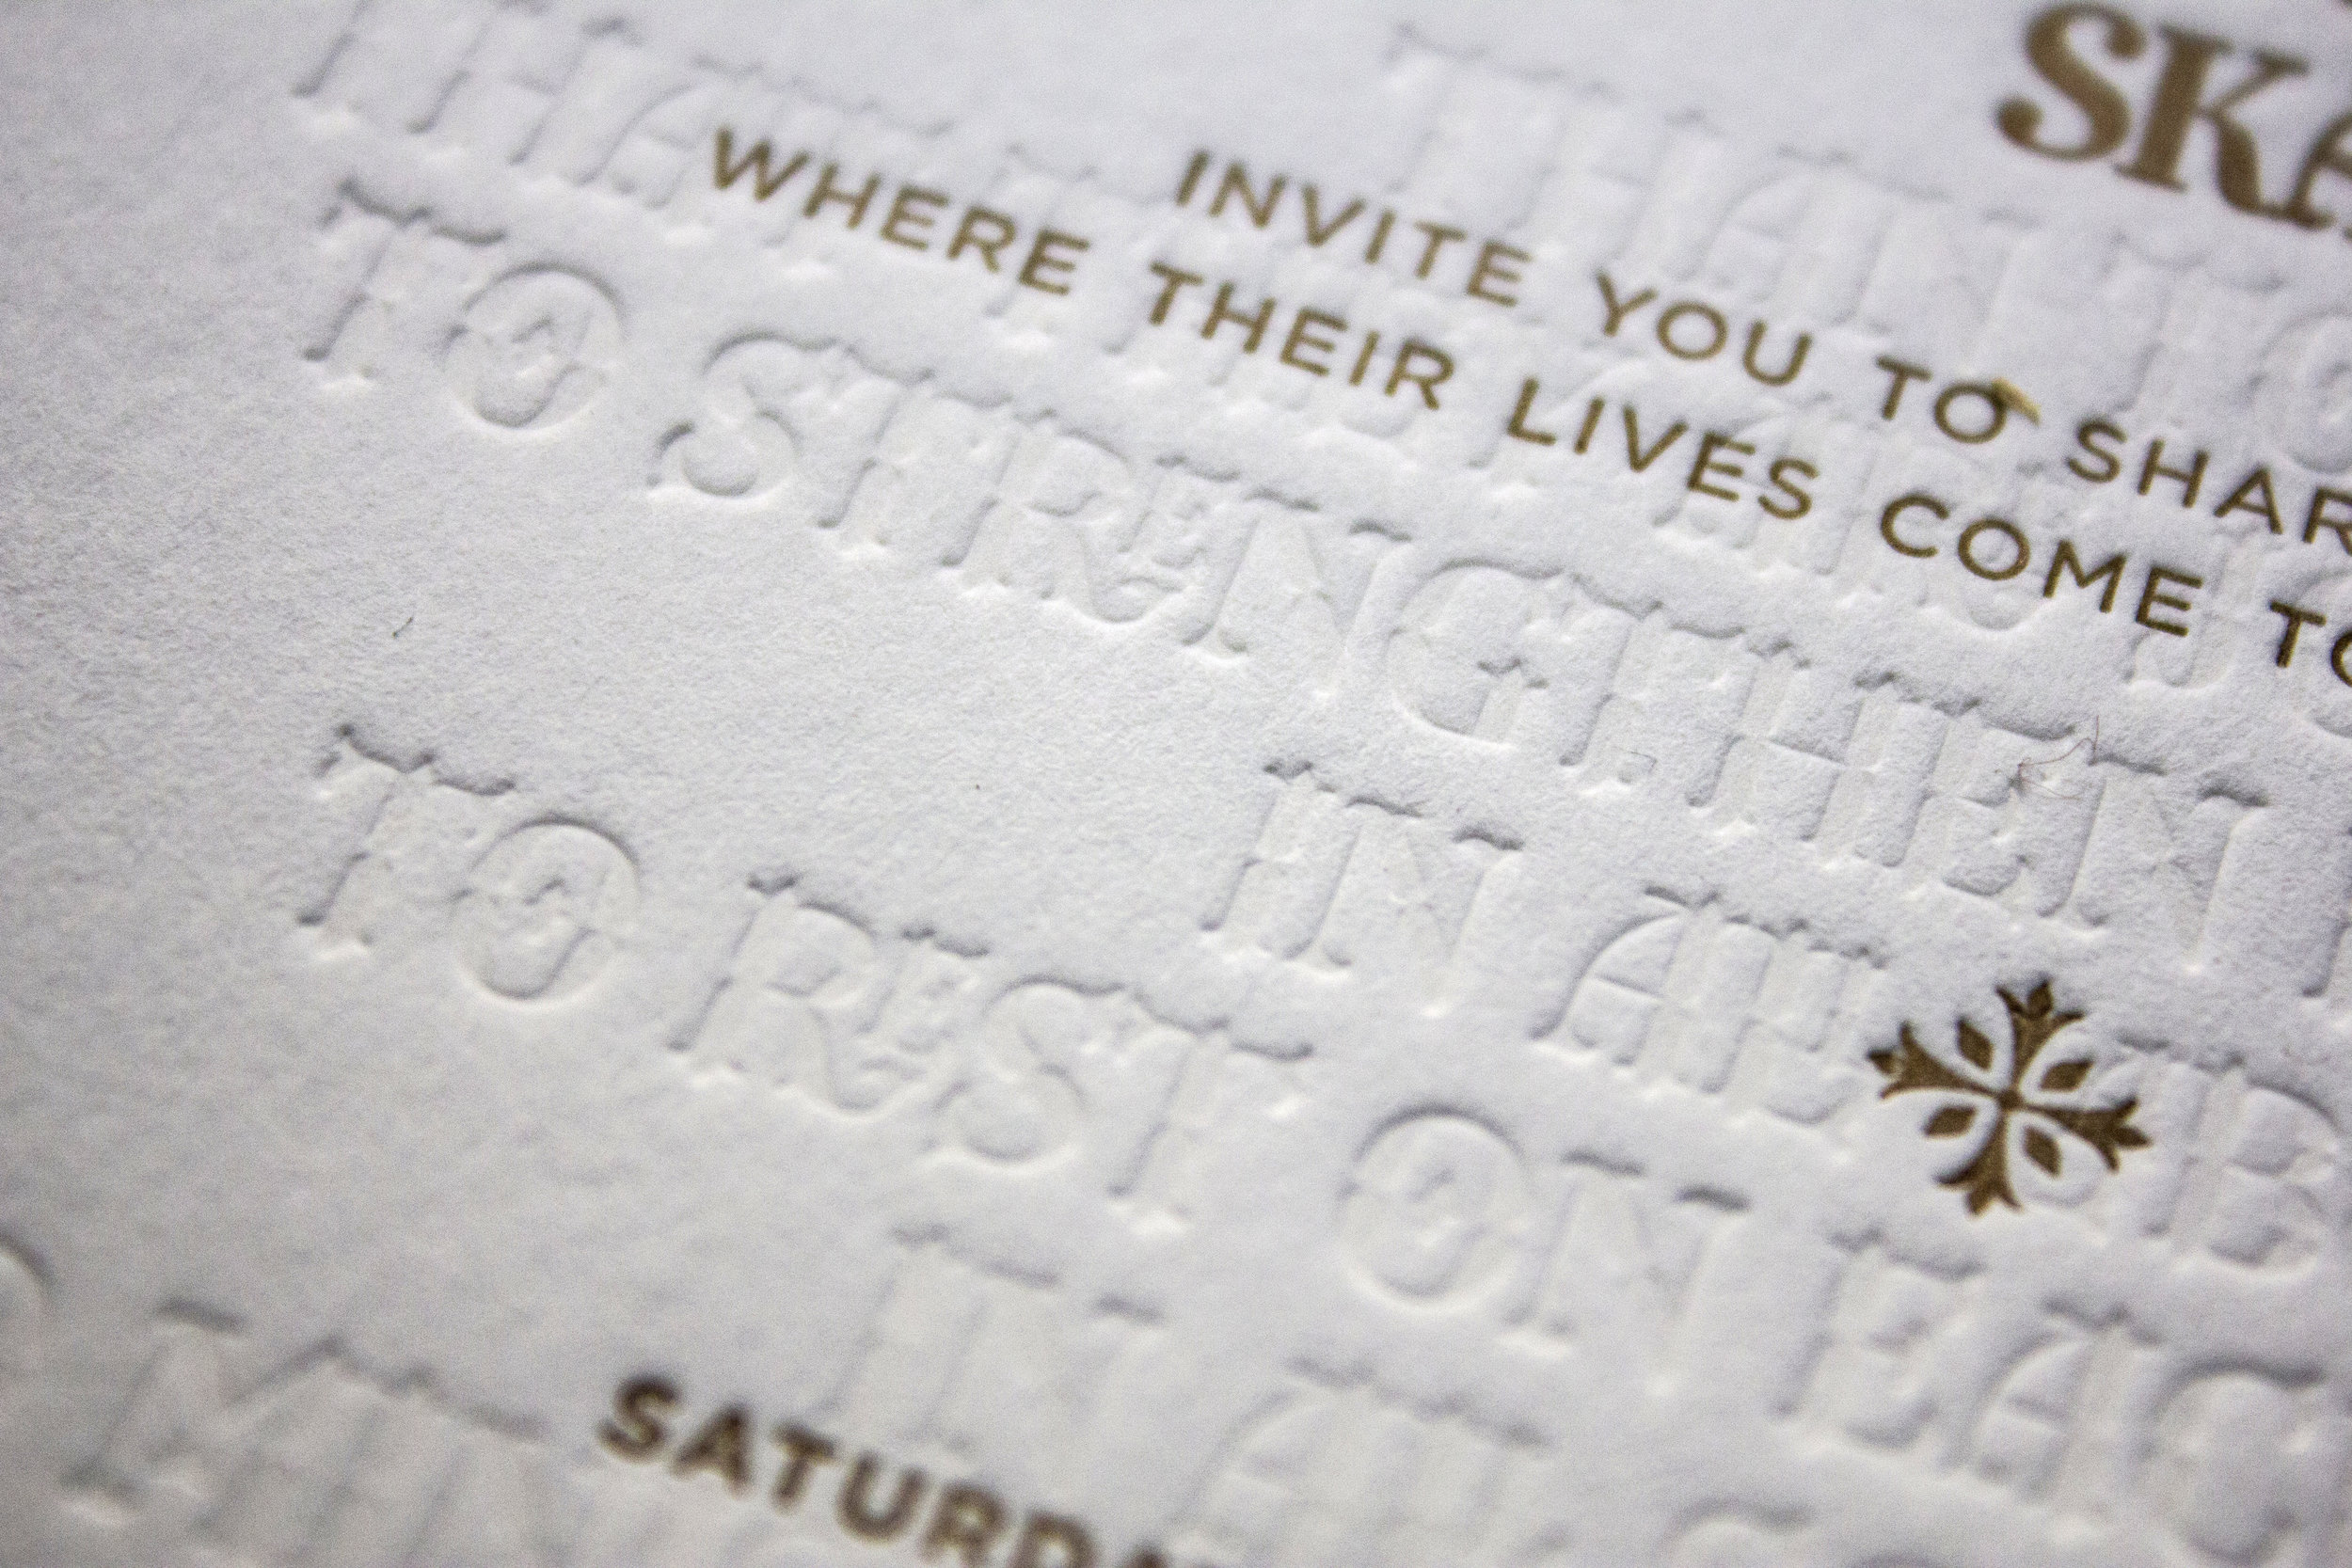 Whiteman_Invitation_Detail_04_5000.jpg